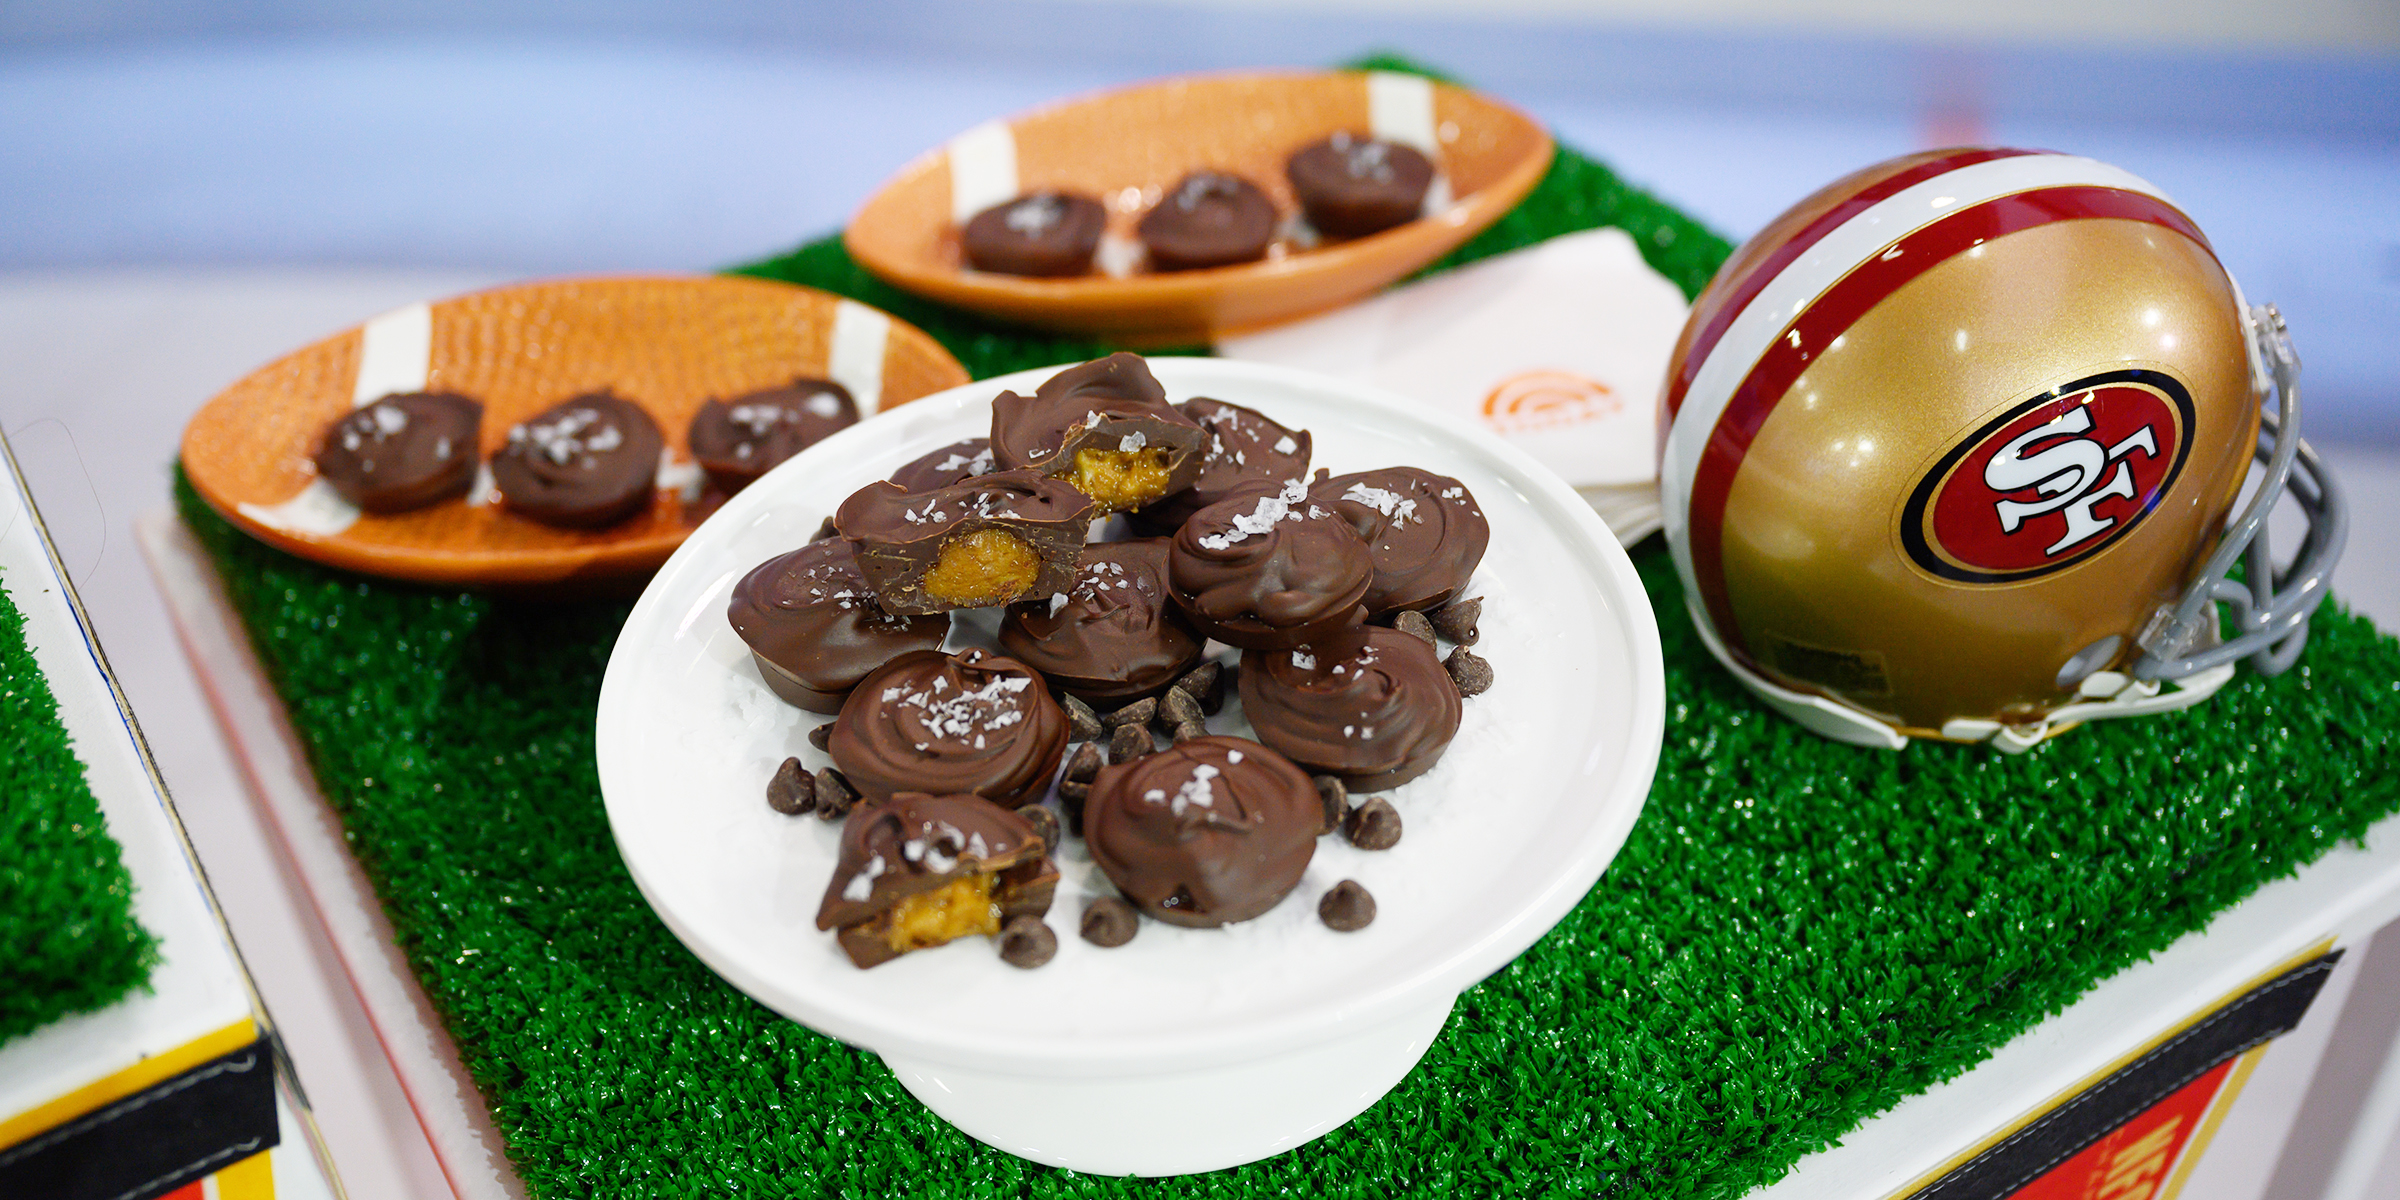 Ina Garten Bobby Flay And Valerie Bertinelli Share Their Favorite Super Bowl Foods Today Com